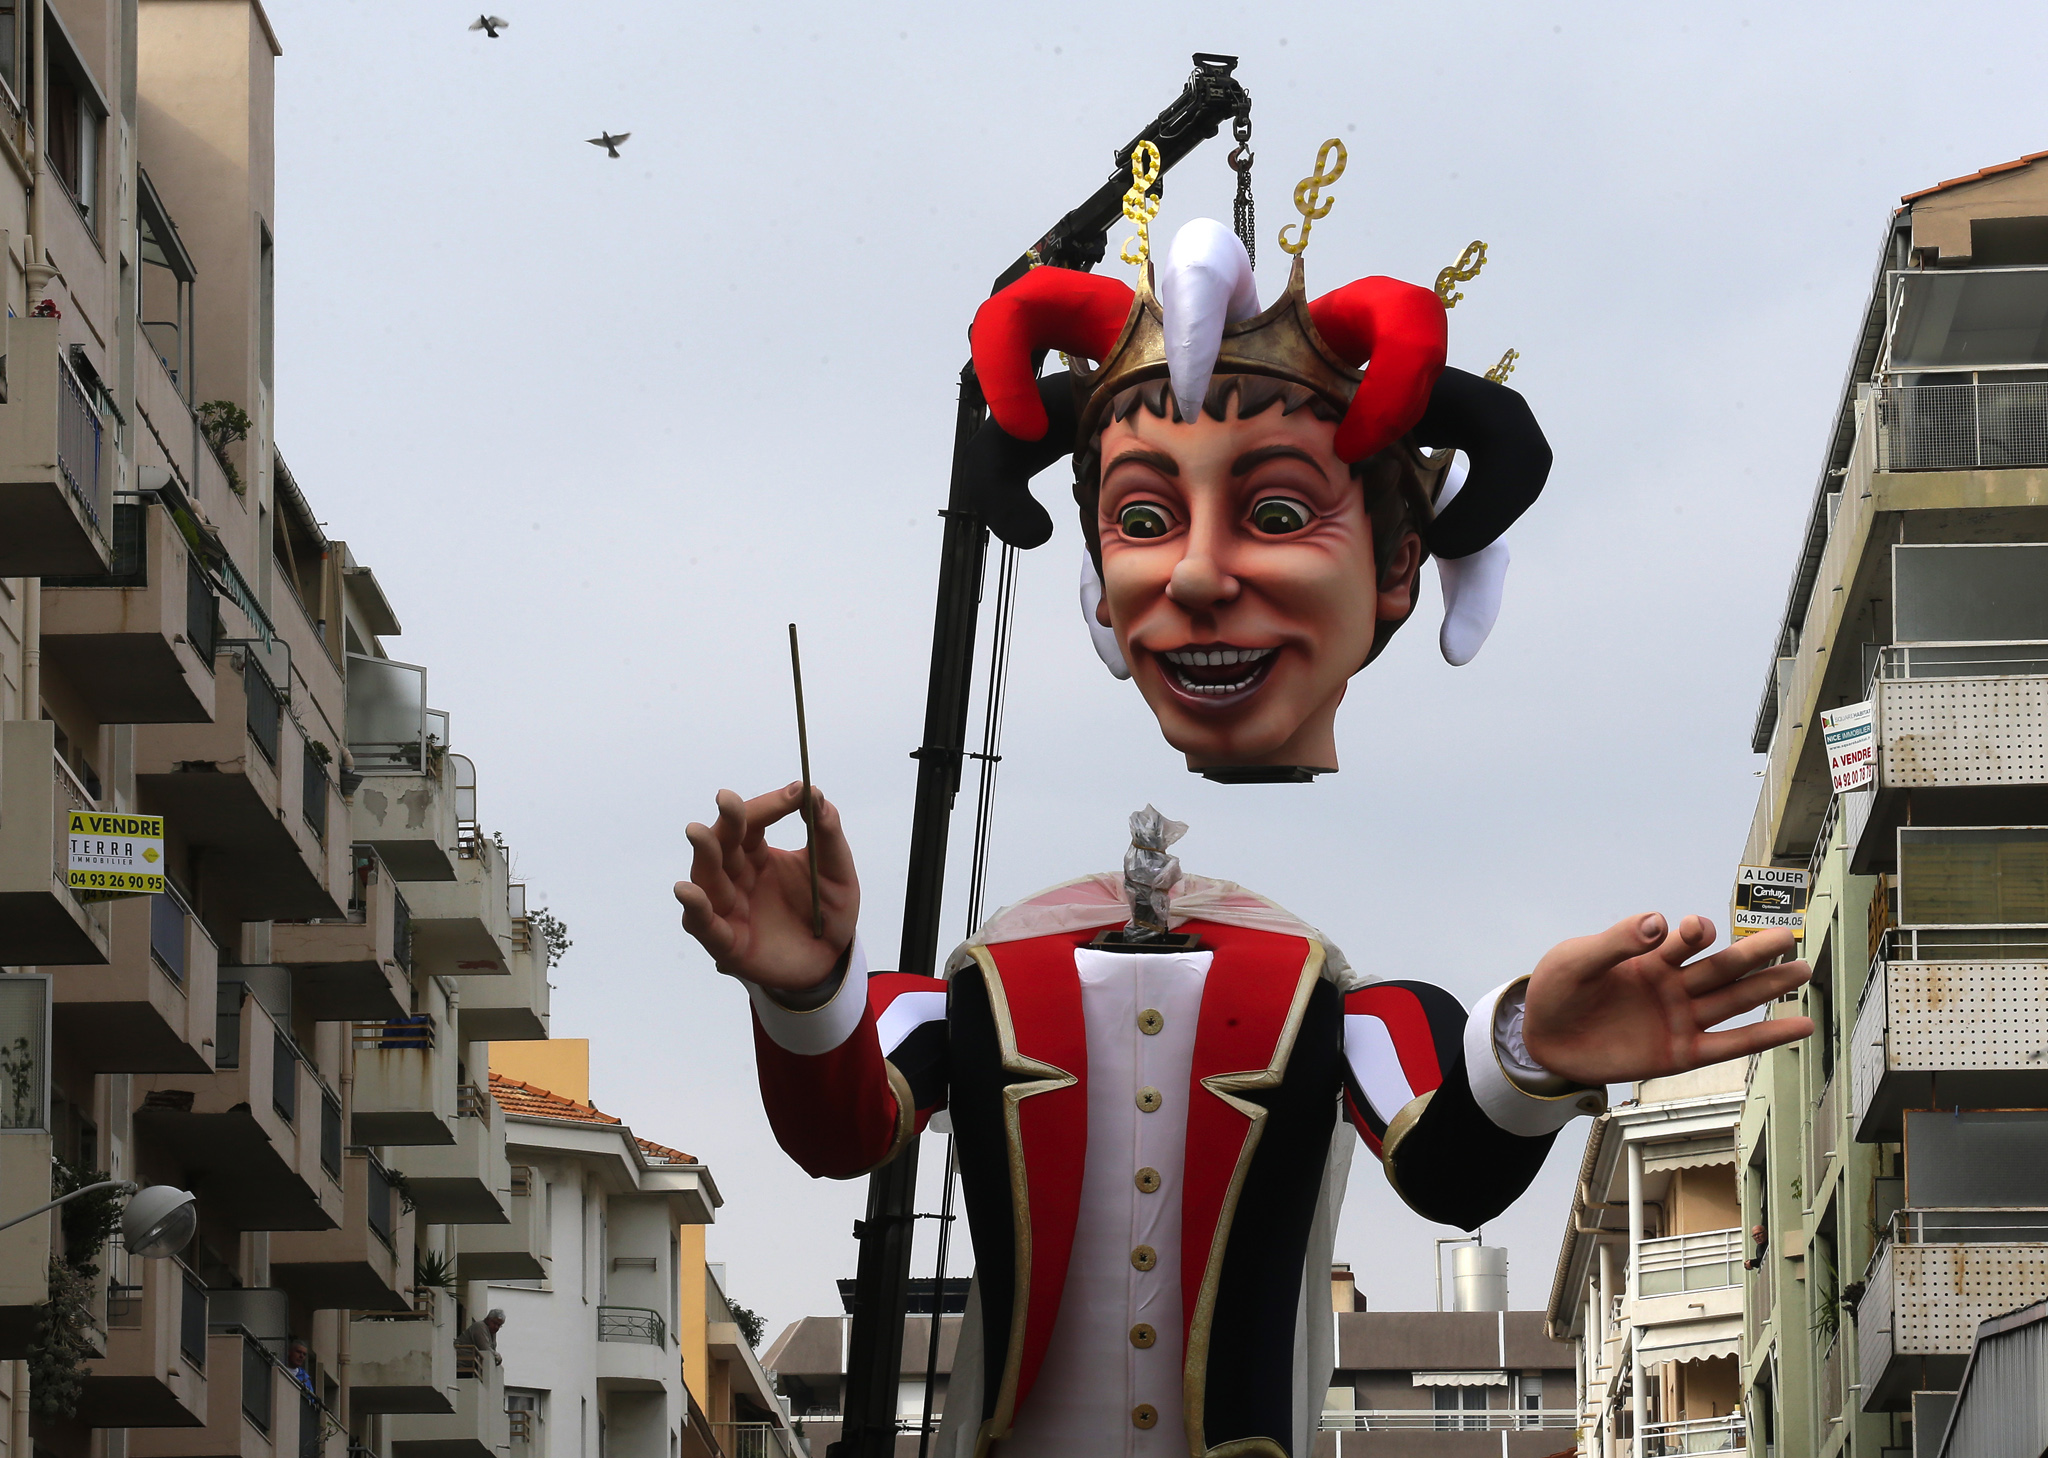 A large mannequin figure depicting the King of the Carnival is set up during preparations for the 131st Nice carnival parade in Nice, southeastern France.